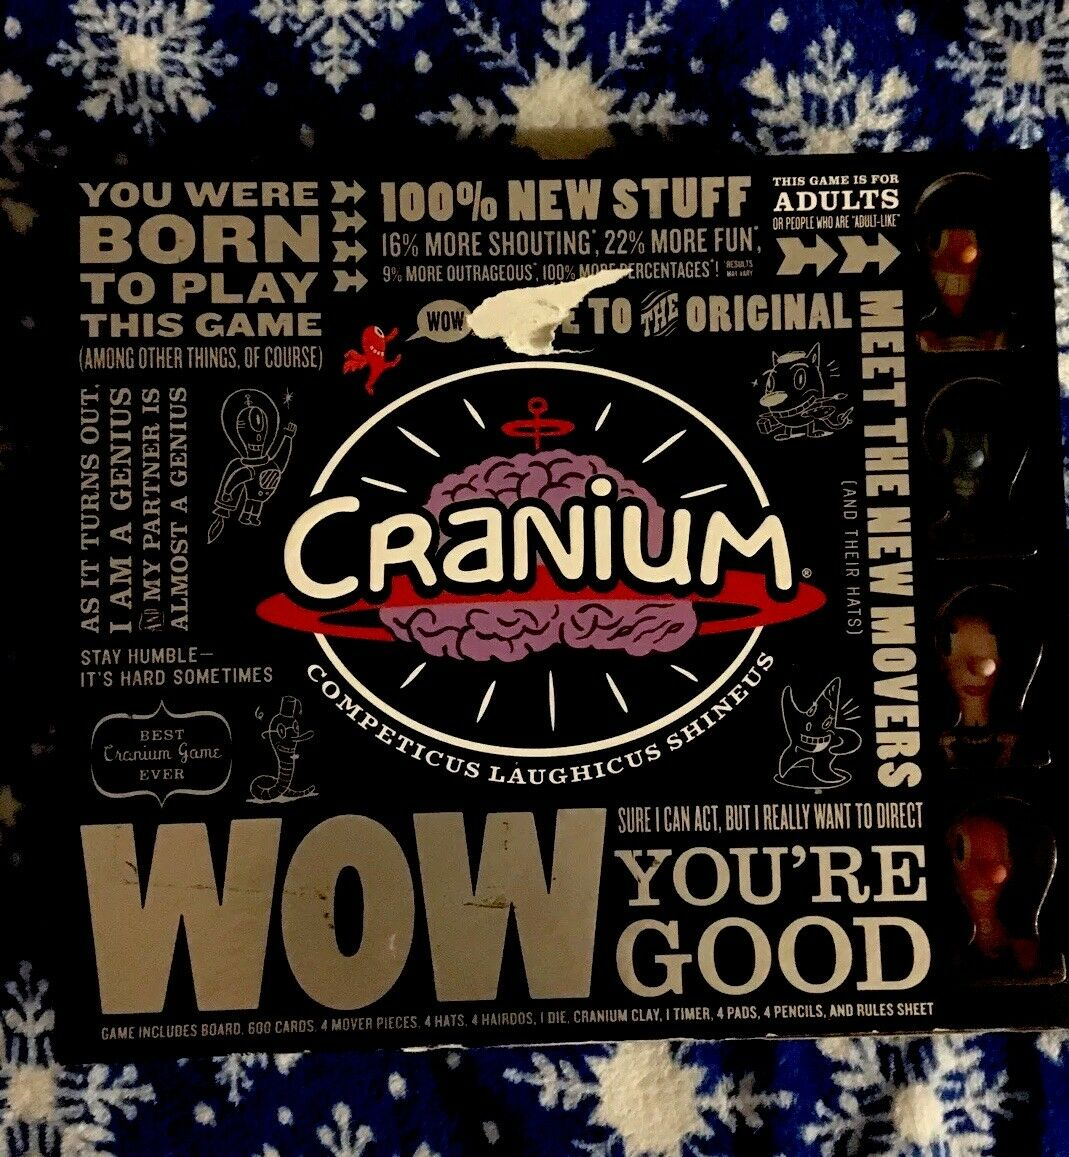 Cranium Board Game - Wow Your Good Edition - 2007 Fun Learning Game a